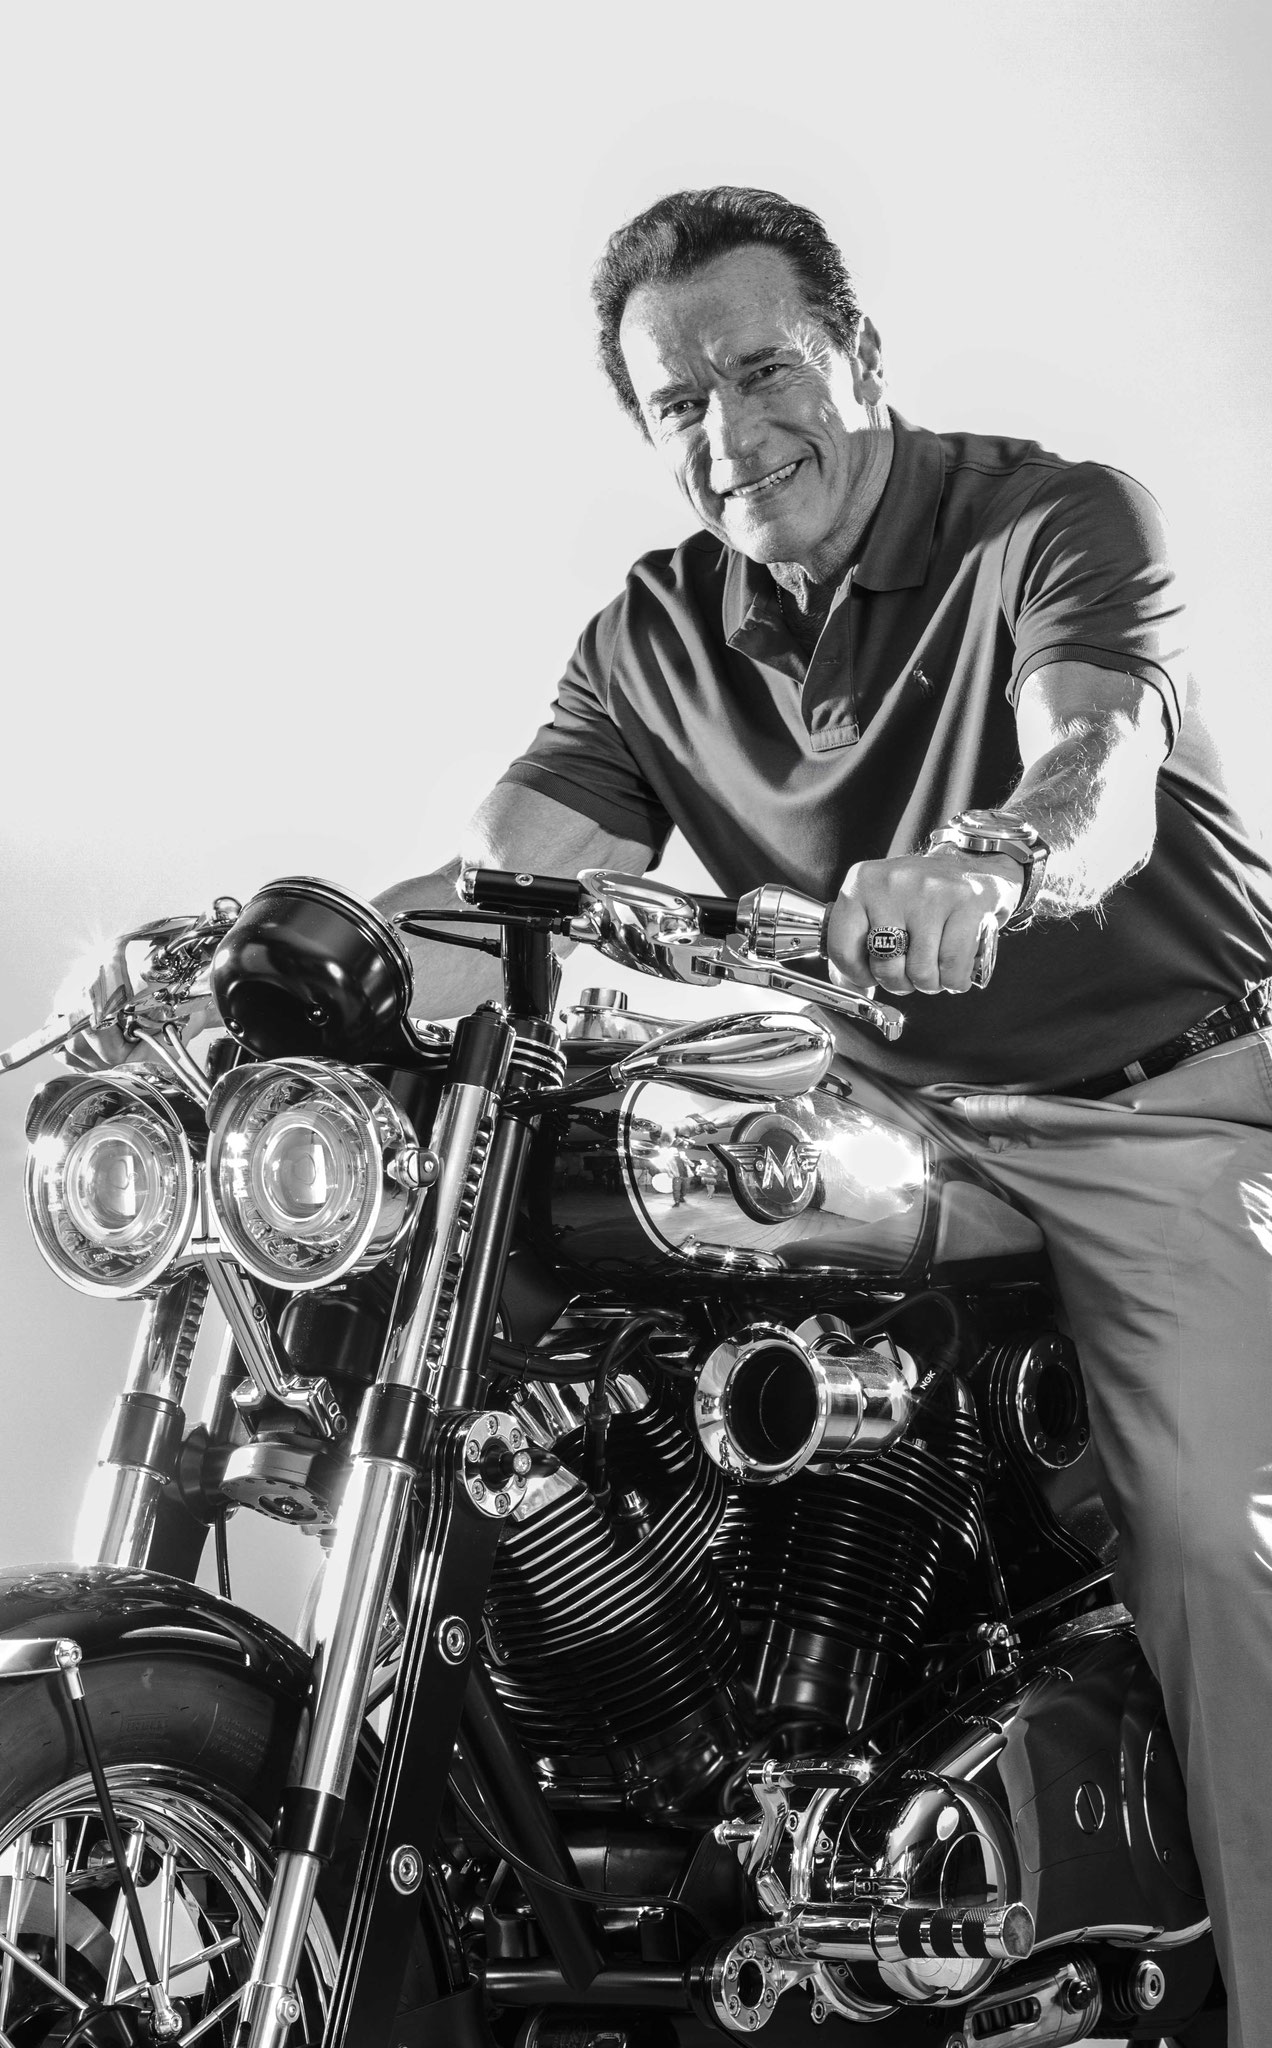 Arnold Schwarzenegger on Model X by Matchless London- |All rights reserved| Copyright Clothing Company